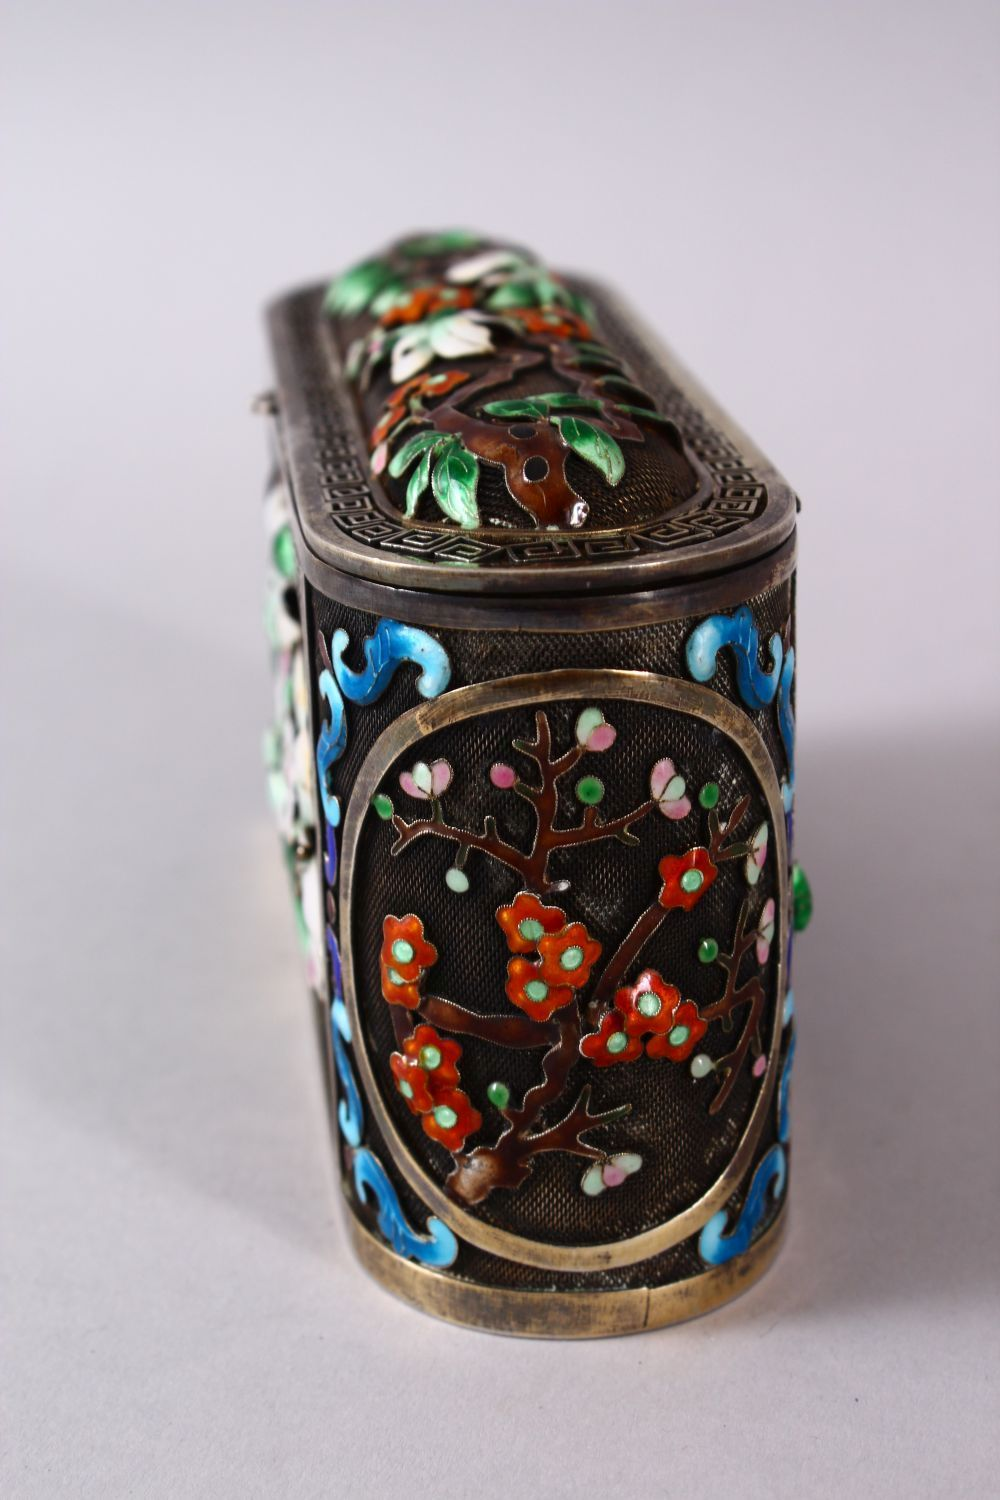 A CHINESE SILVER & ENAMEL LIDDED BOX, with enamel decoration of native flora, base marked silver, - Image 5 of 10